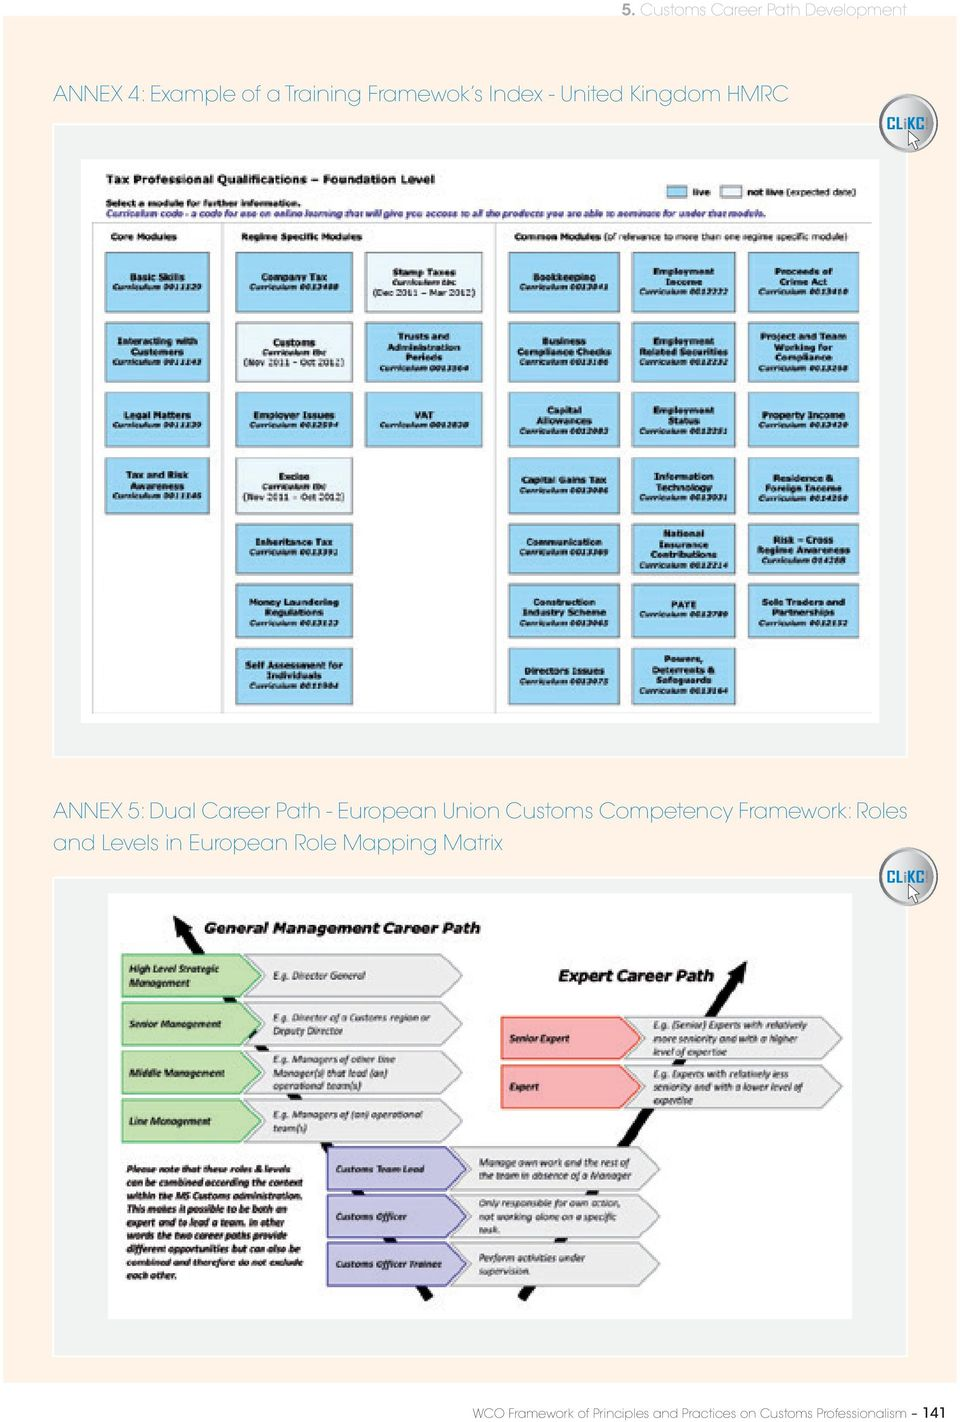 Customs Competency Framework: Roles and Levels in European Role Mapping